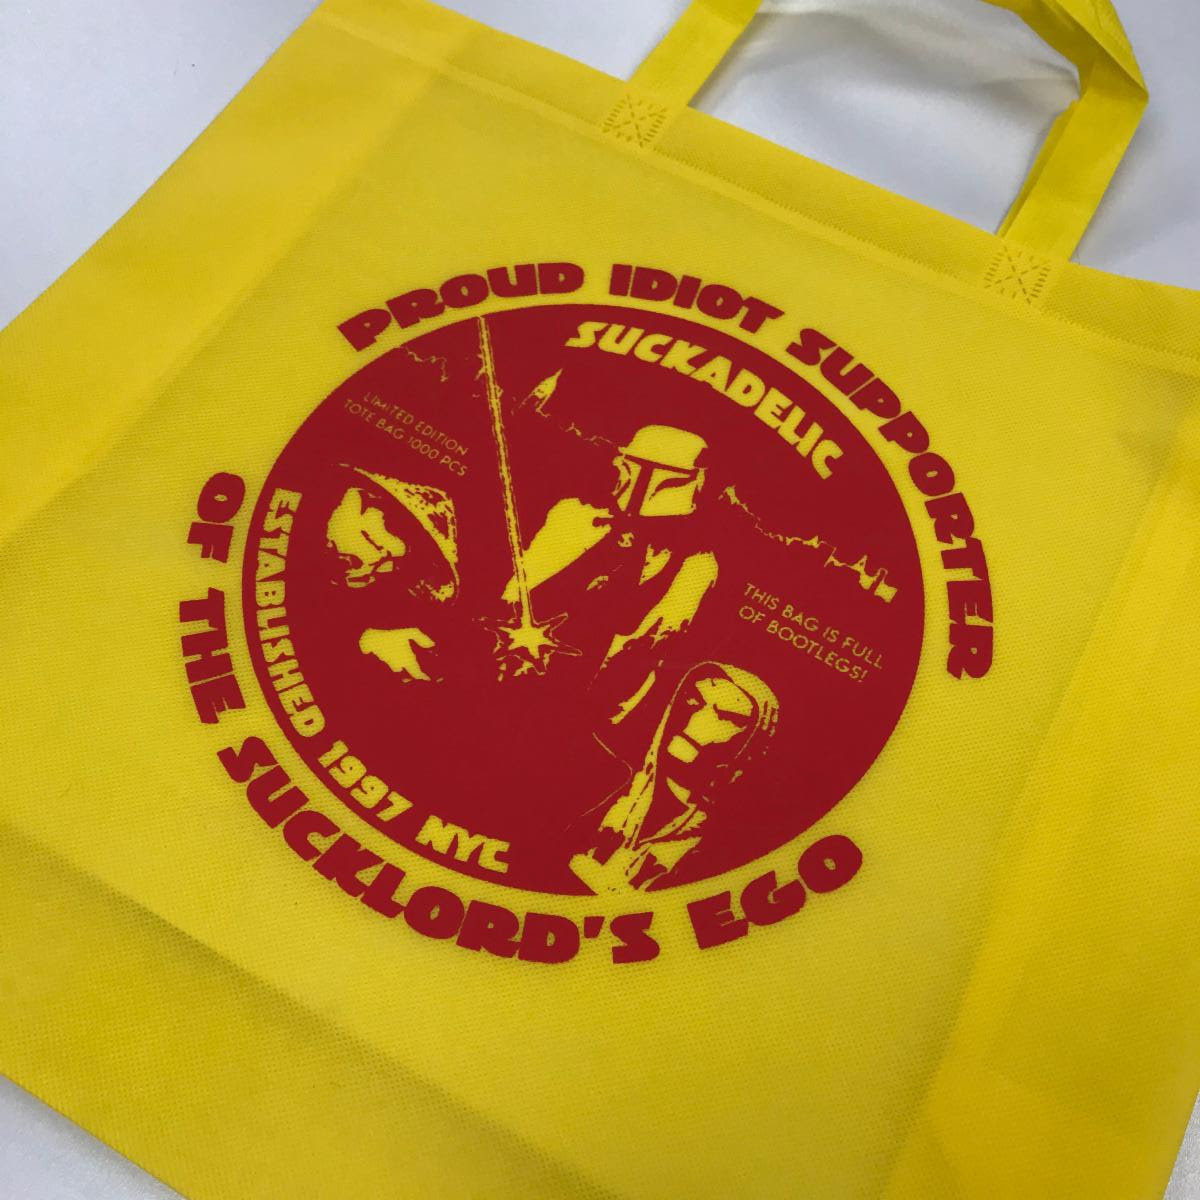 Free Suckadelic tote bag with purchase! (front pictured)